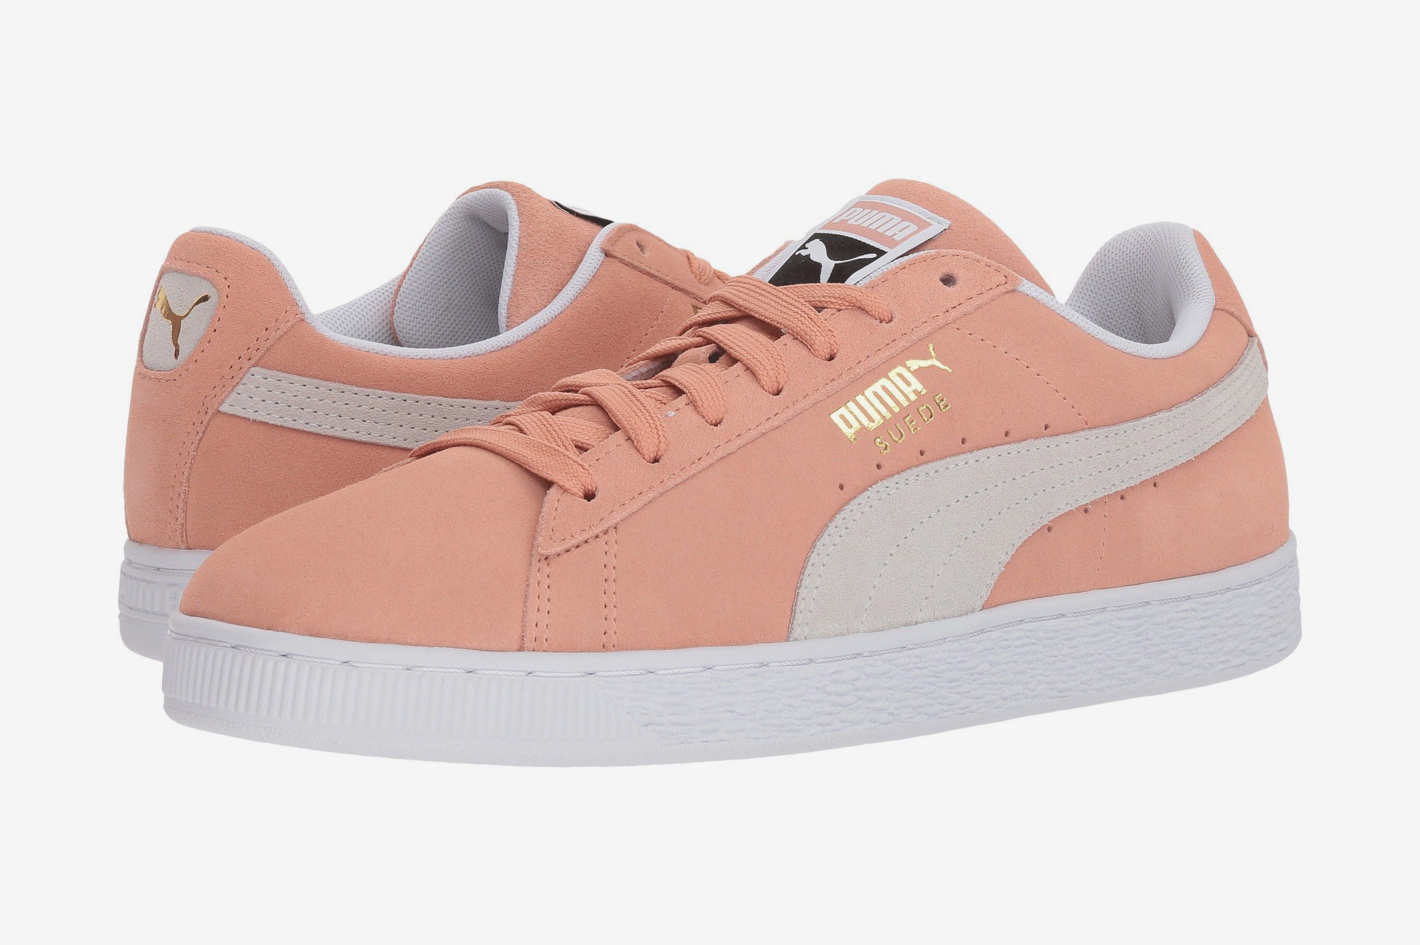 Puma Suede Classic in Muted Clay/Puma White